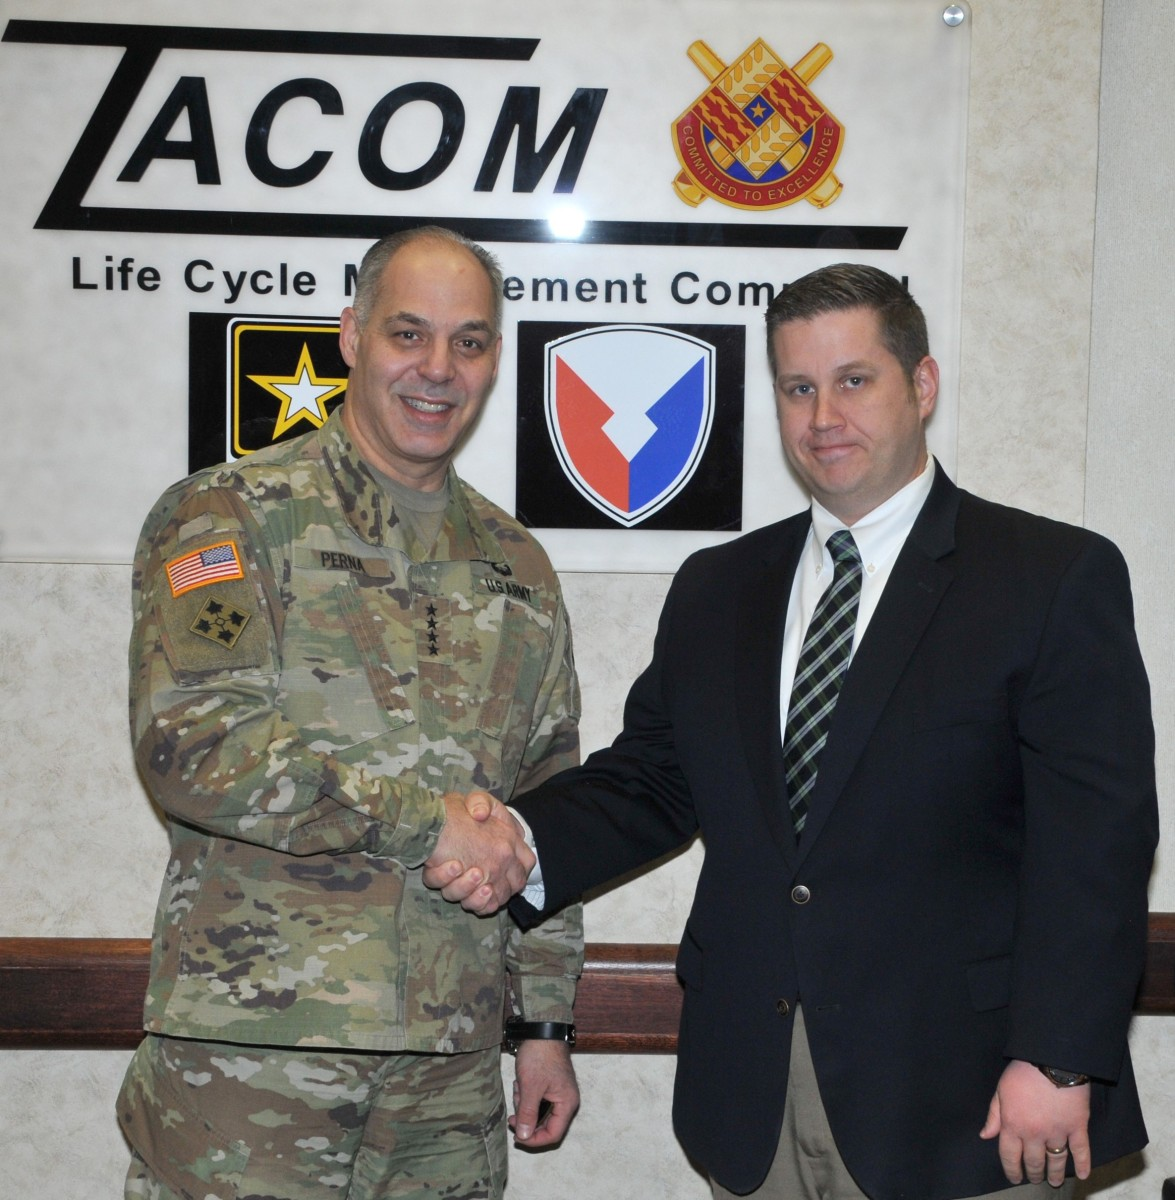 Tacom Employee Contributions For Supply Availability